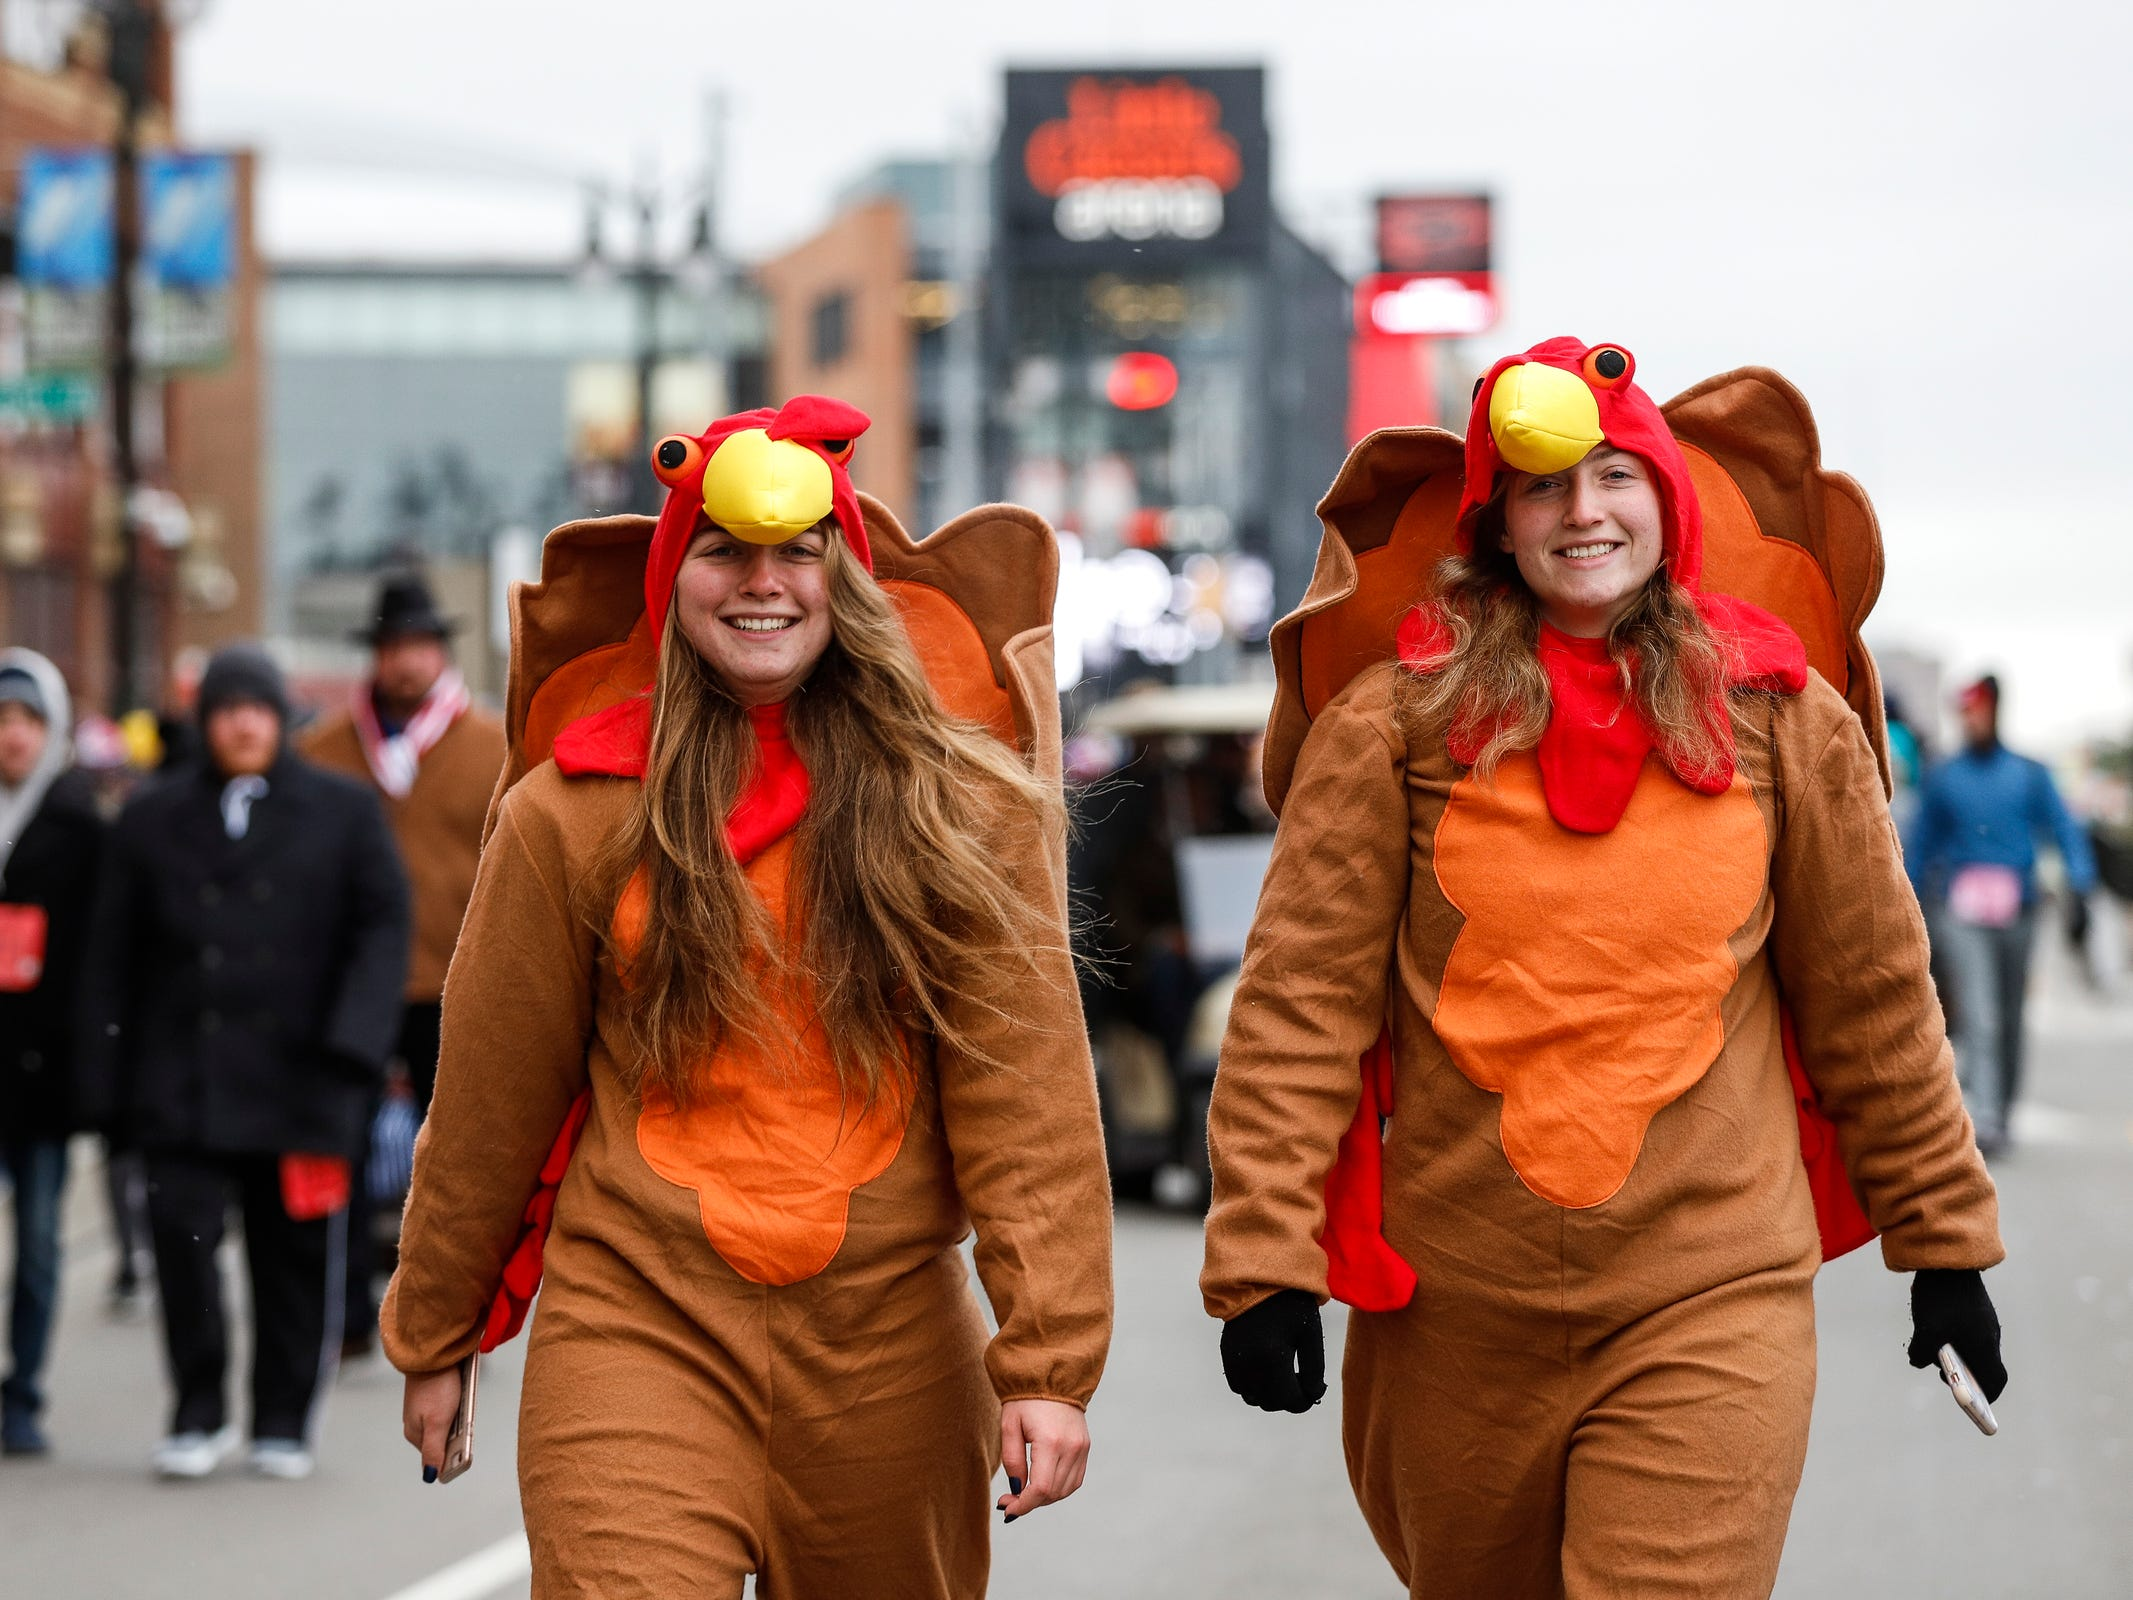 Emma Kelly, center, and her sister Devon Kelly, walks down Woodward Avenue during the Turkey Trot 5k and 10k in Detroit, Thursday, Nov. 22, 2018.